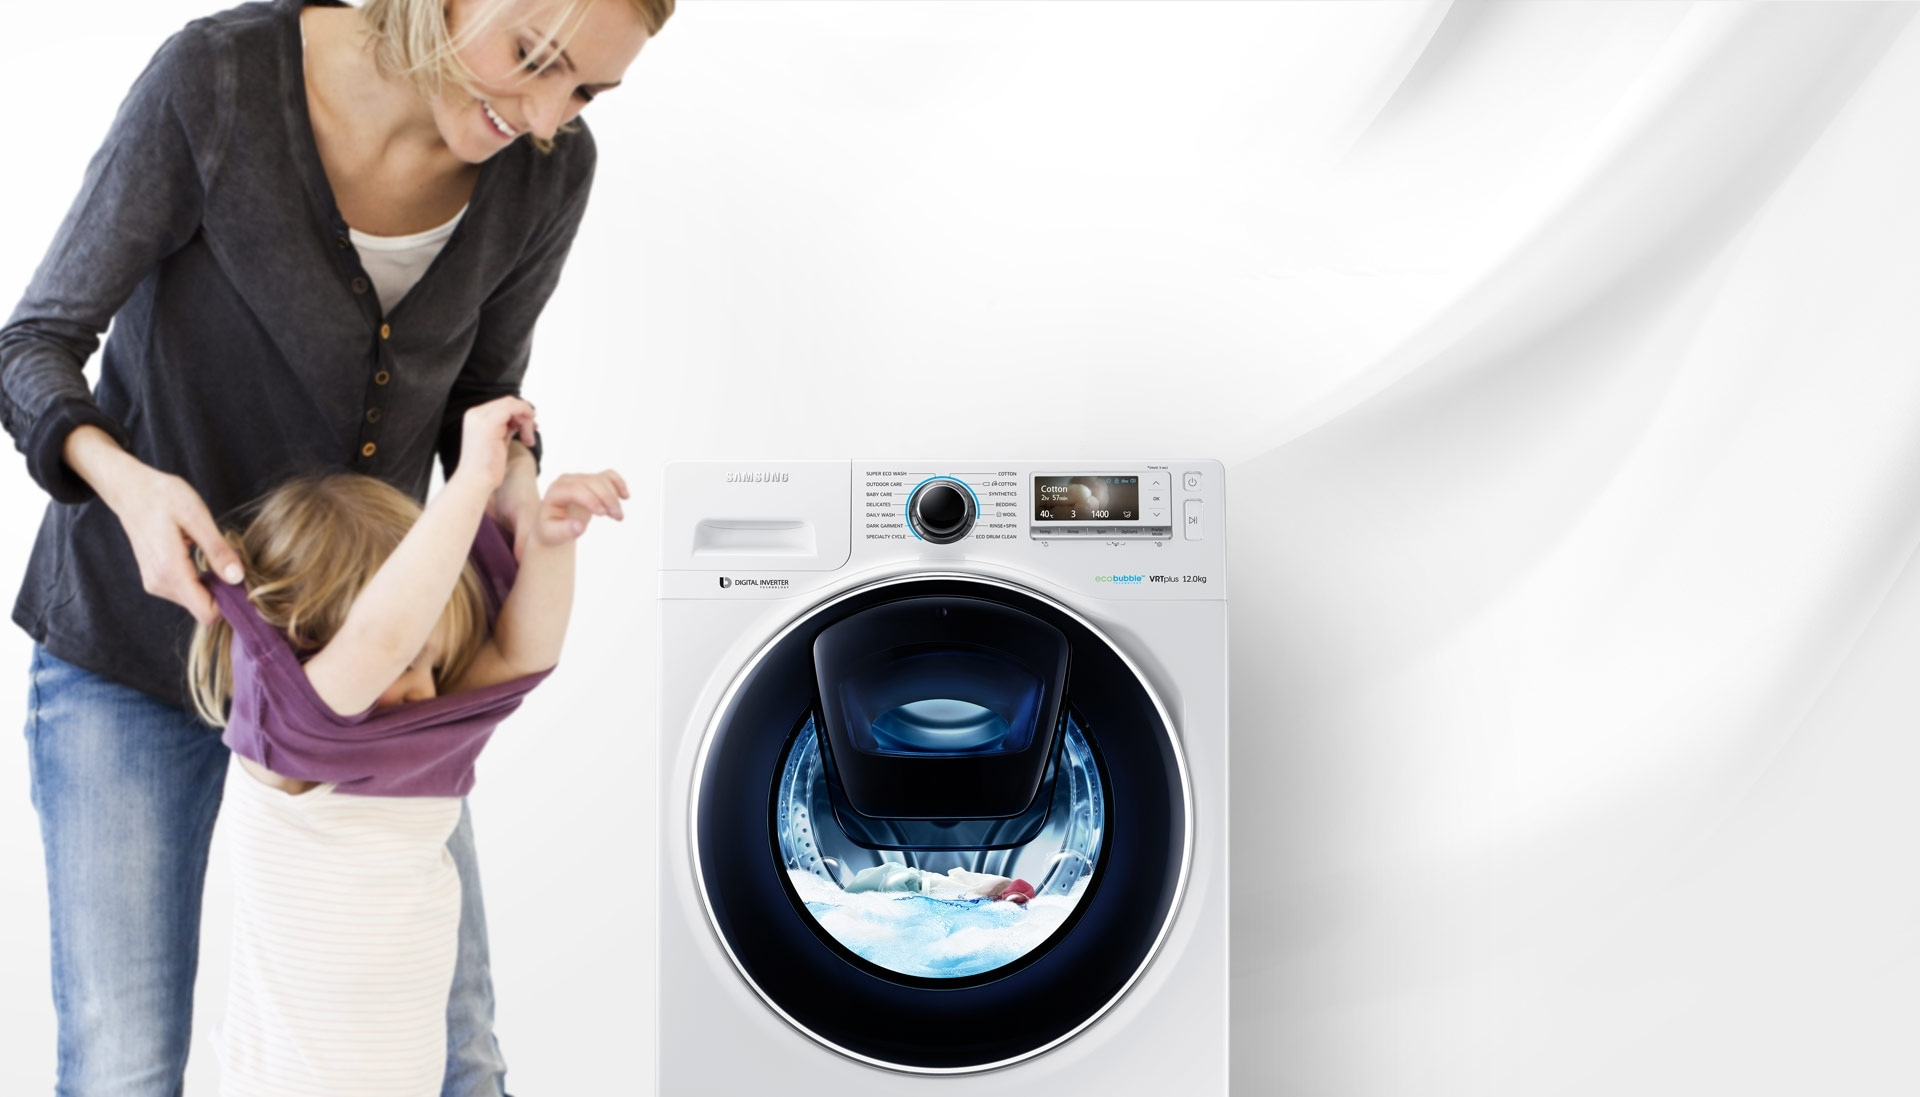 An image of a woman taking off her child's clothes next to a WW8500 washing machine which is in the middle of a cycle.